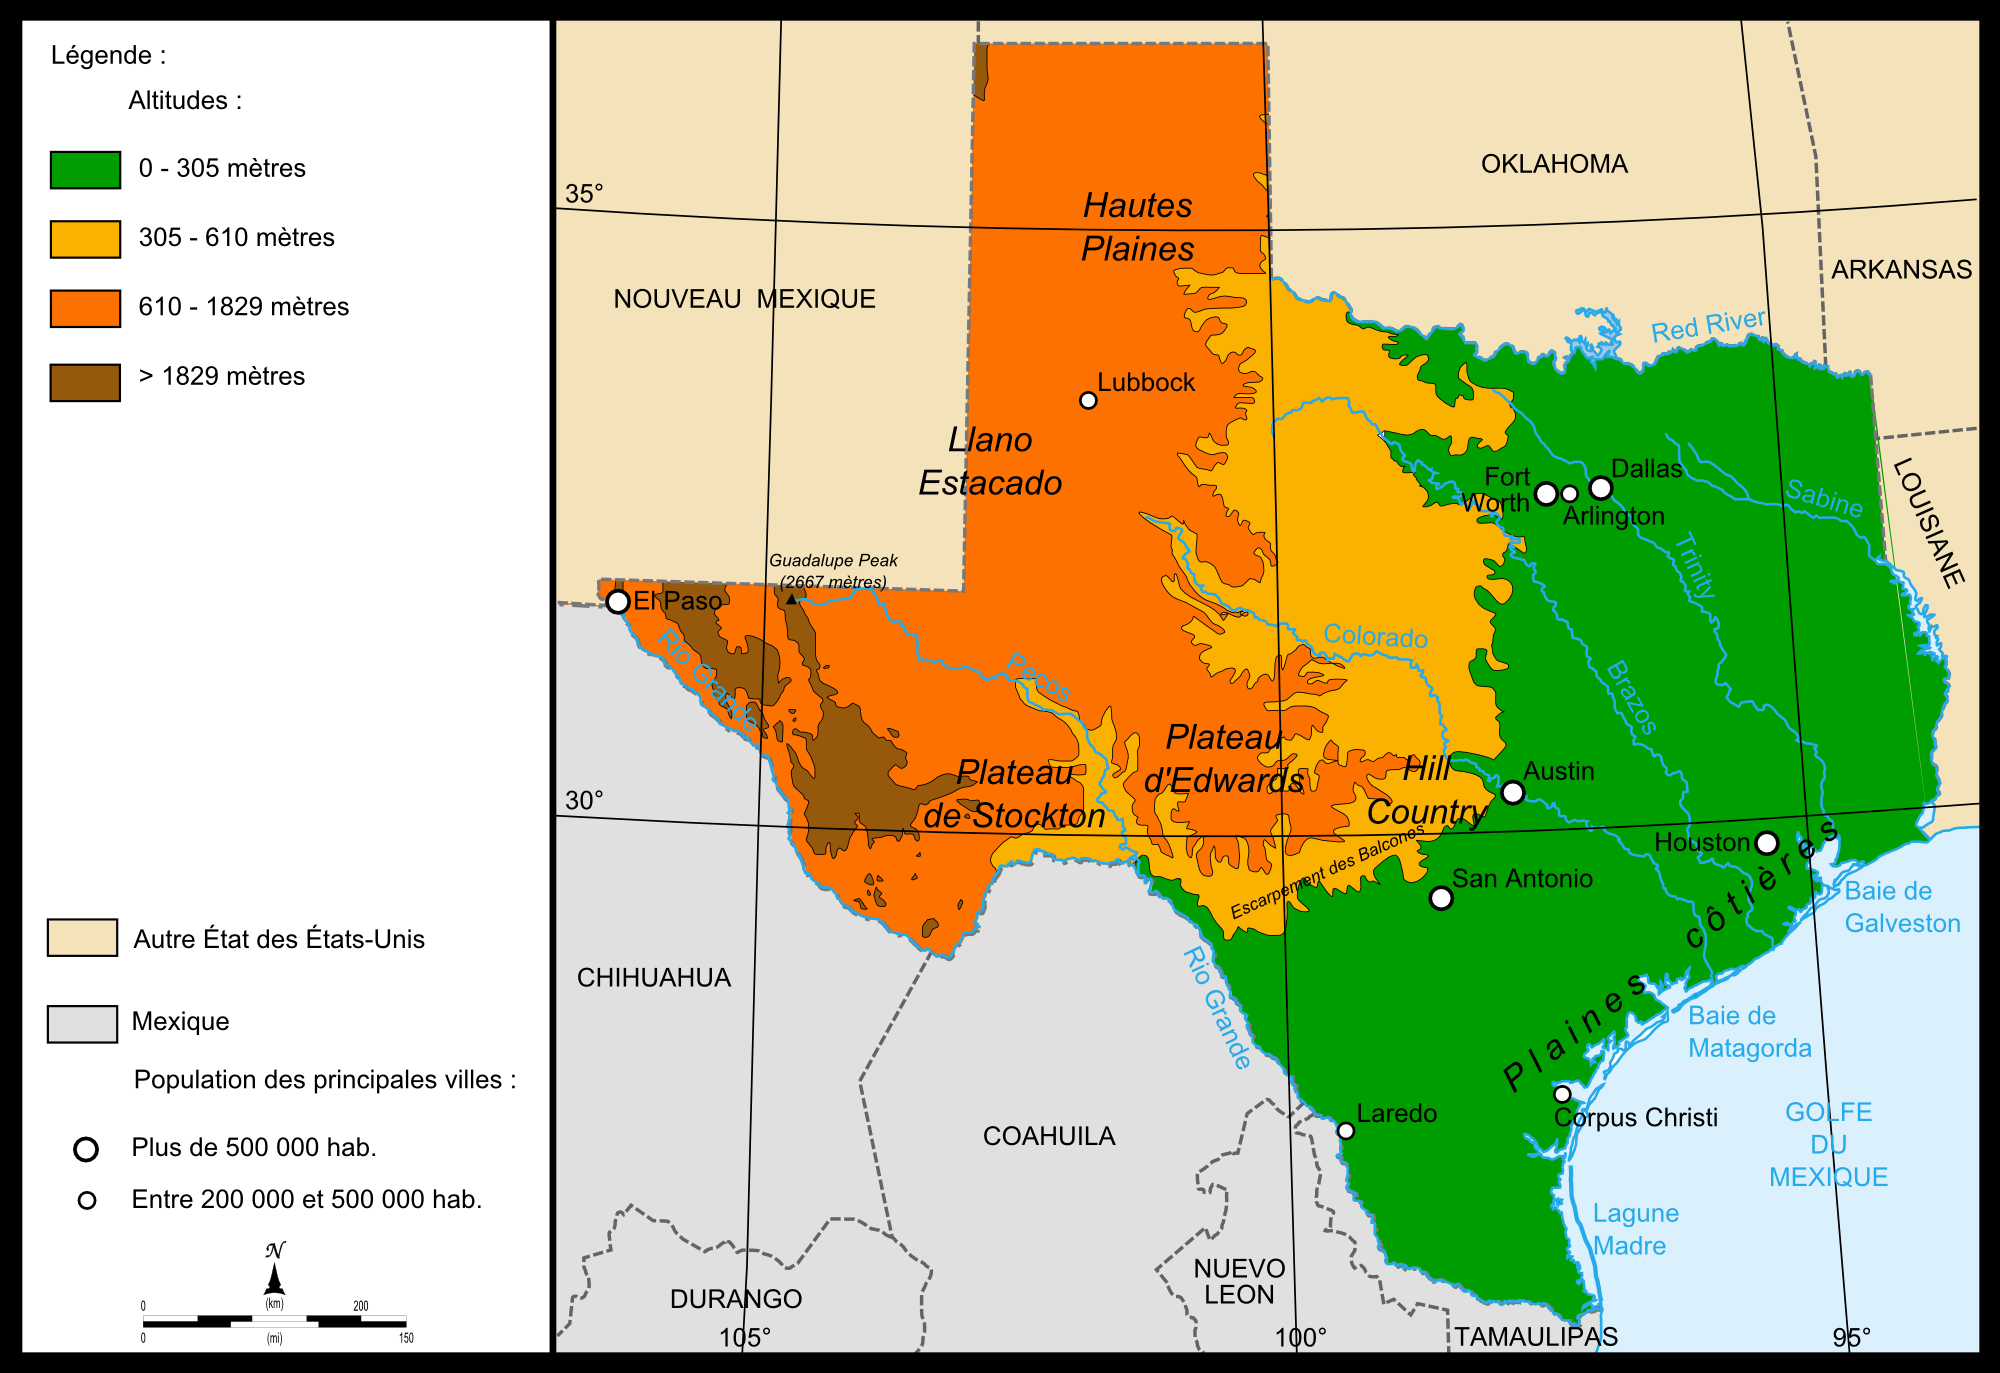 FileMap Relief Texaspng Wikimedia Commons - Maps of texas